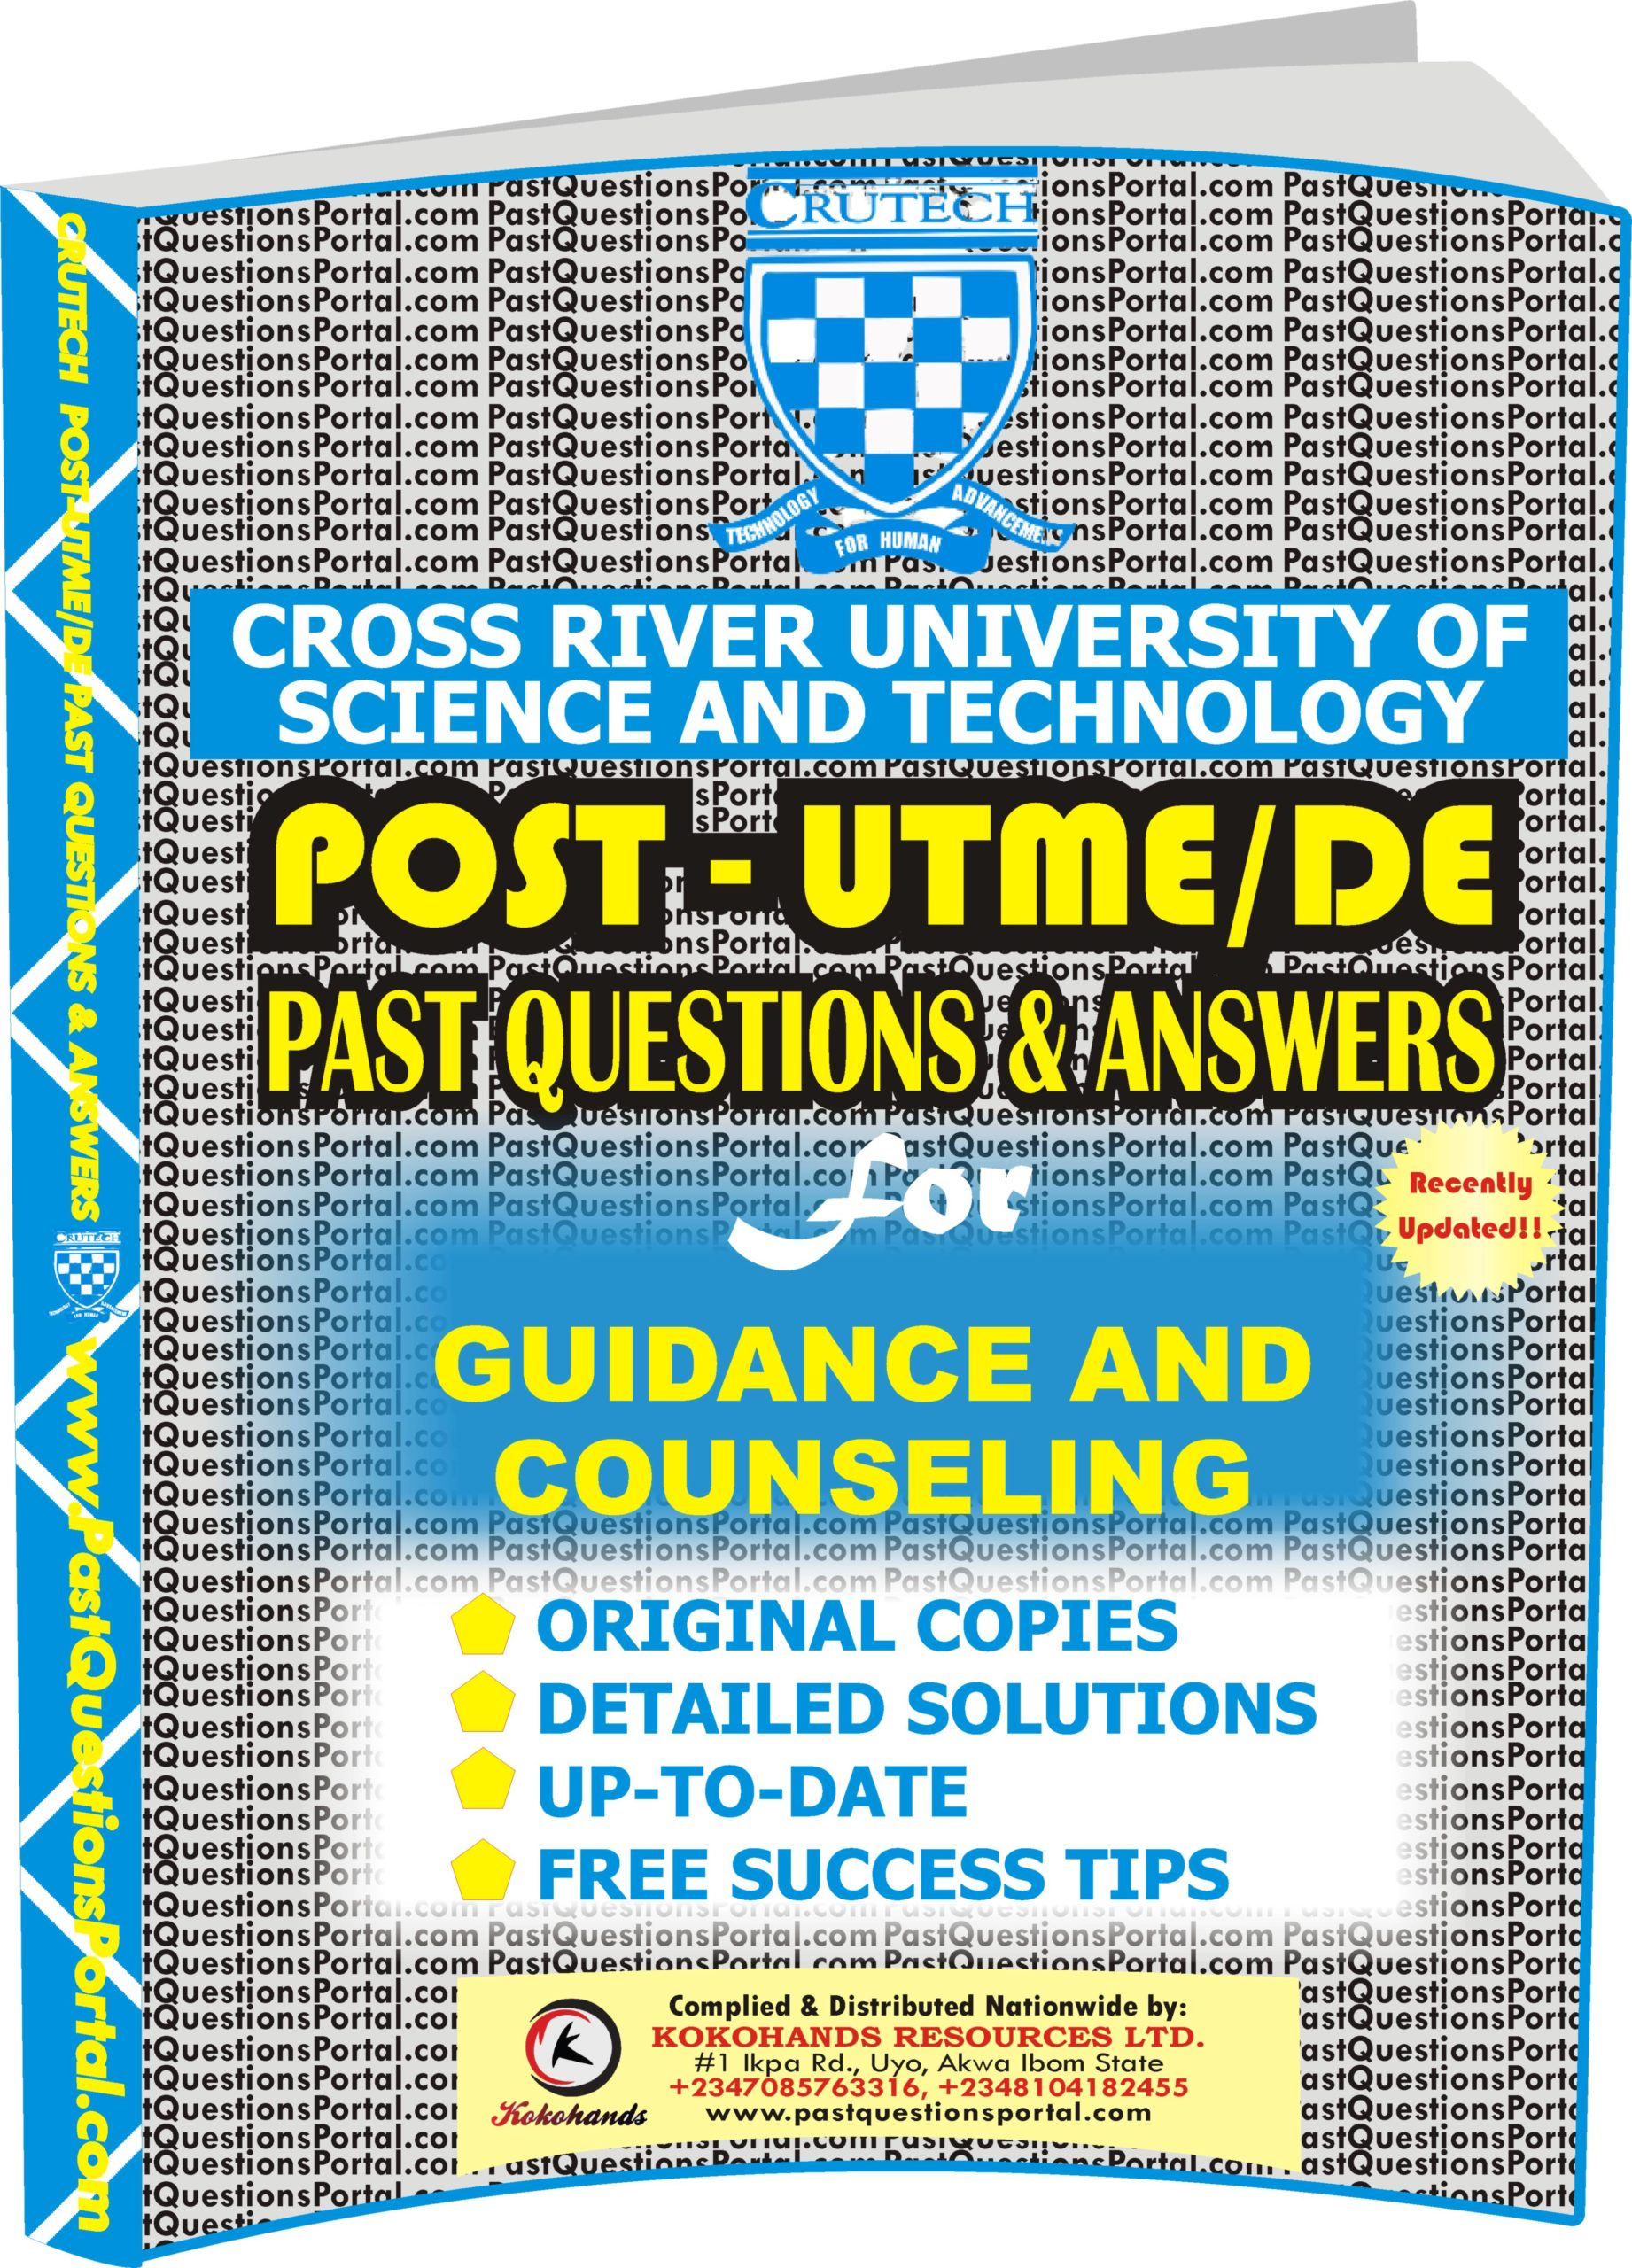 CRUTECH Post UTME Past Questions for GUIDANCE AND COUNSELING